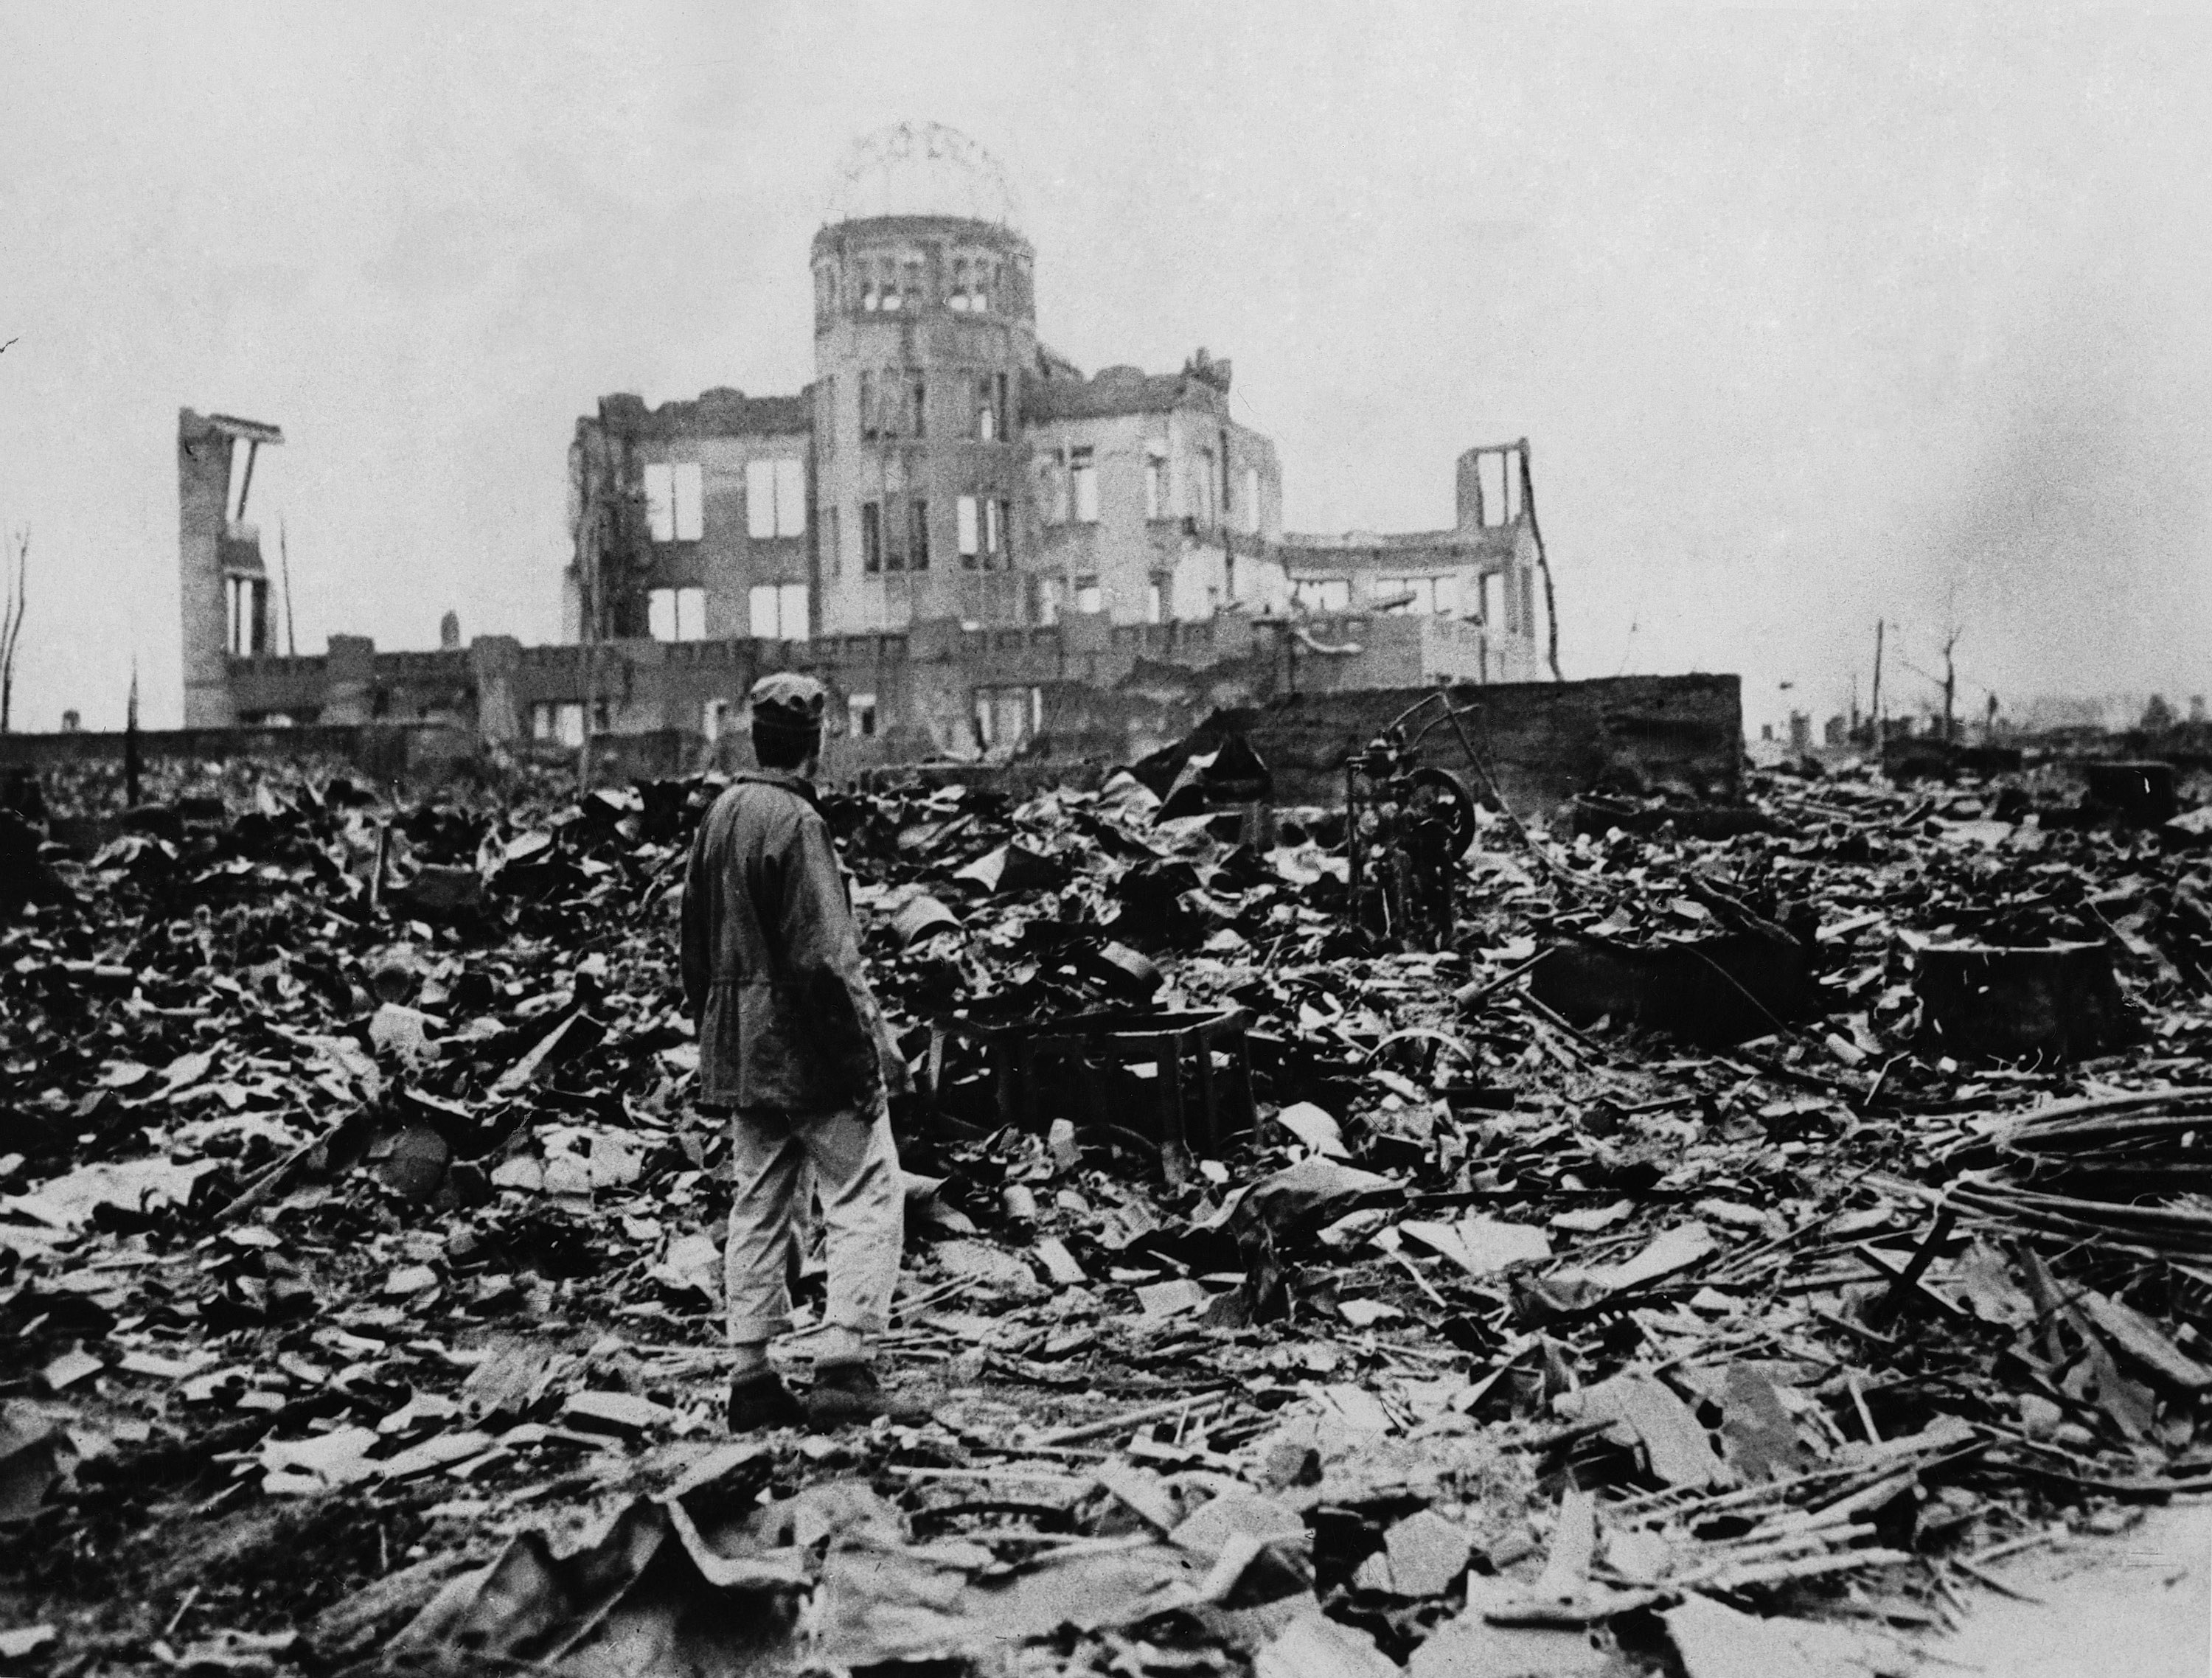 A man walks through rubble looking off to a still-standing building in the distance